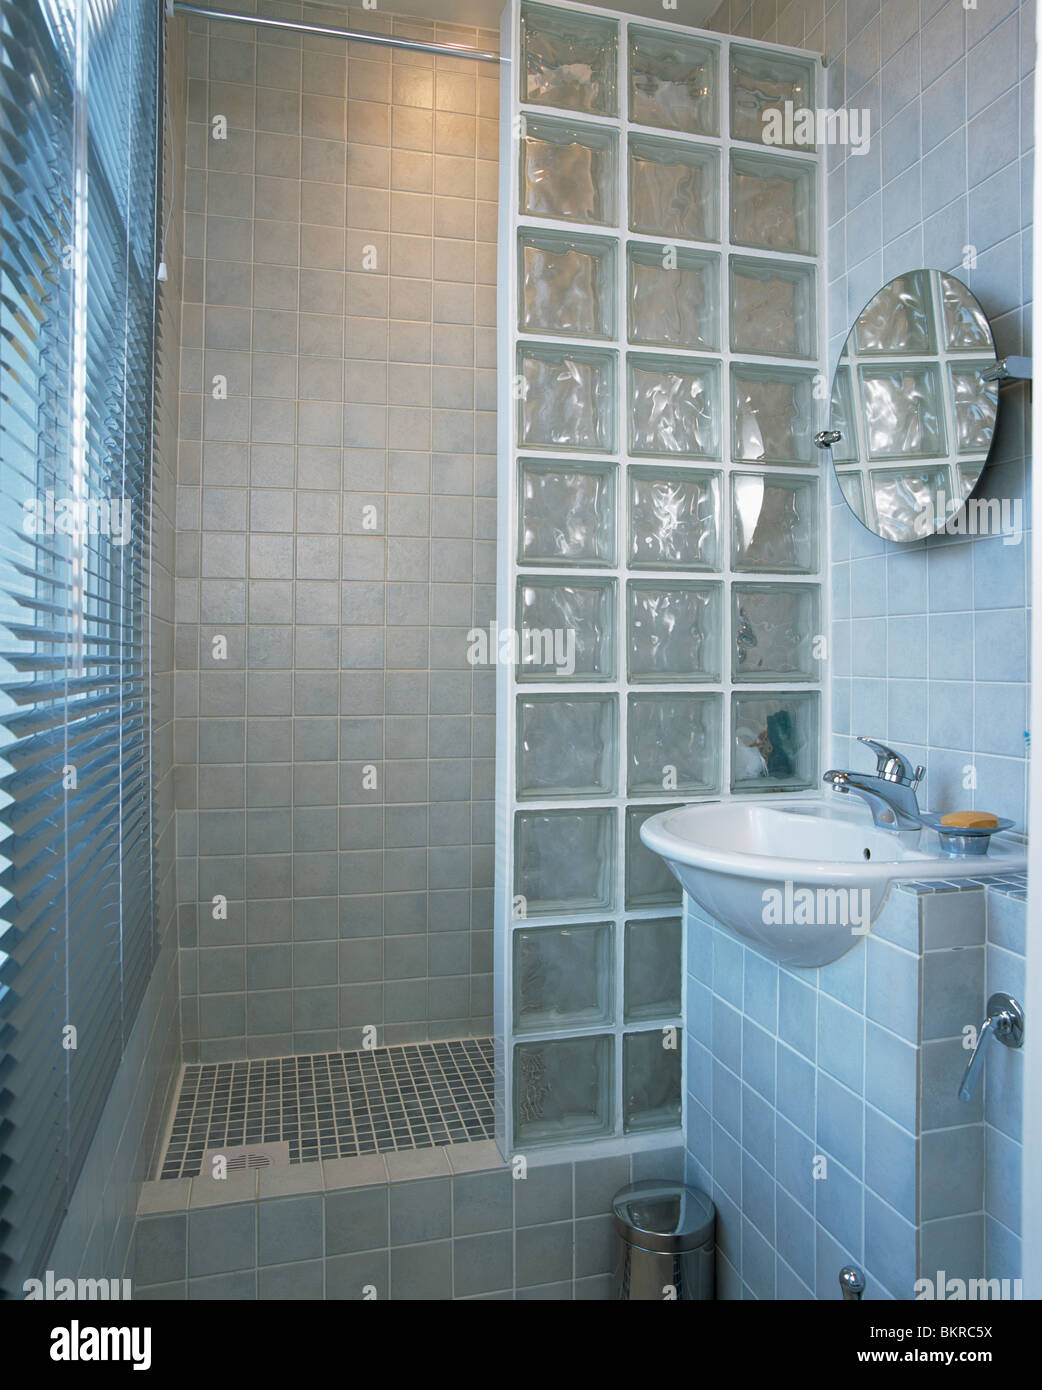 Glass Brick Shower Wall In Small Modern Tiled Bathroom With Stock Photo 29403302 Alamy